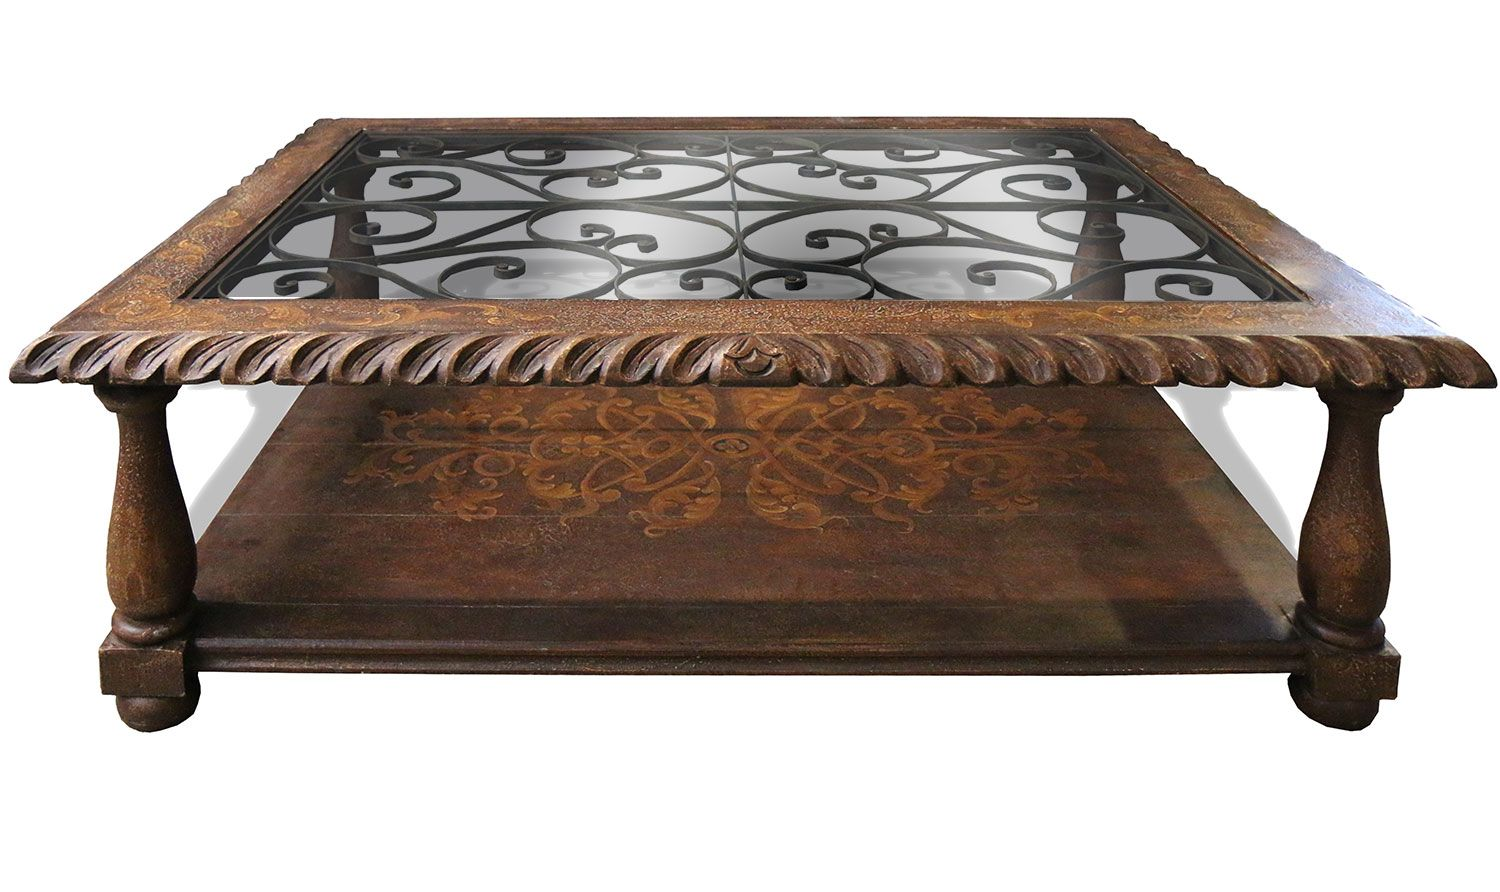 Get This Tuscan Coffee Table For Your Tuscany Styled Home Decorating Description From Tumblr I Searched On Bing Images